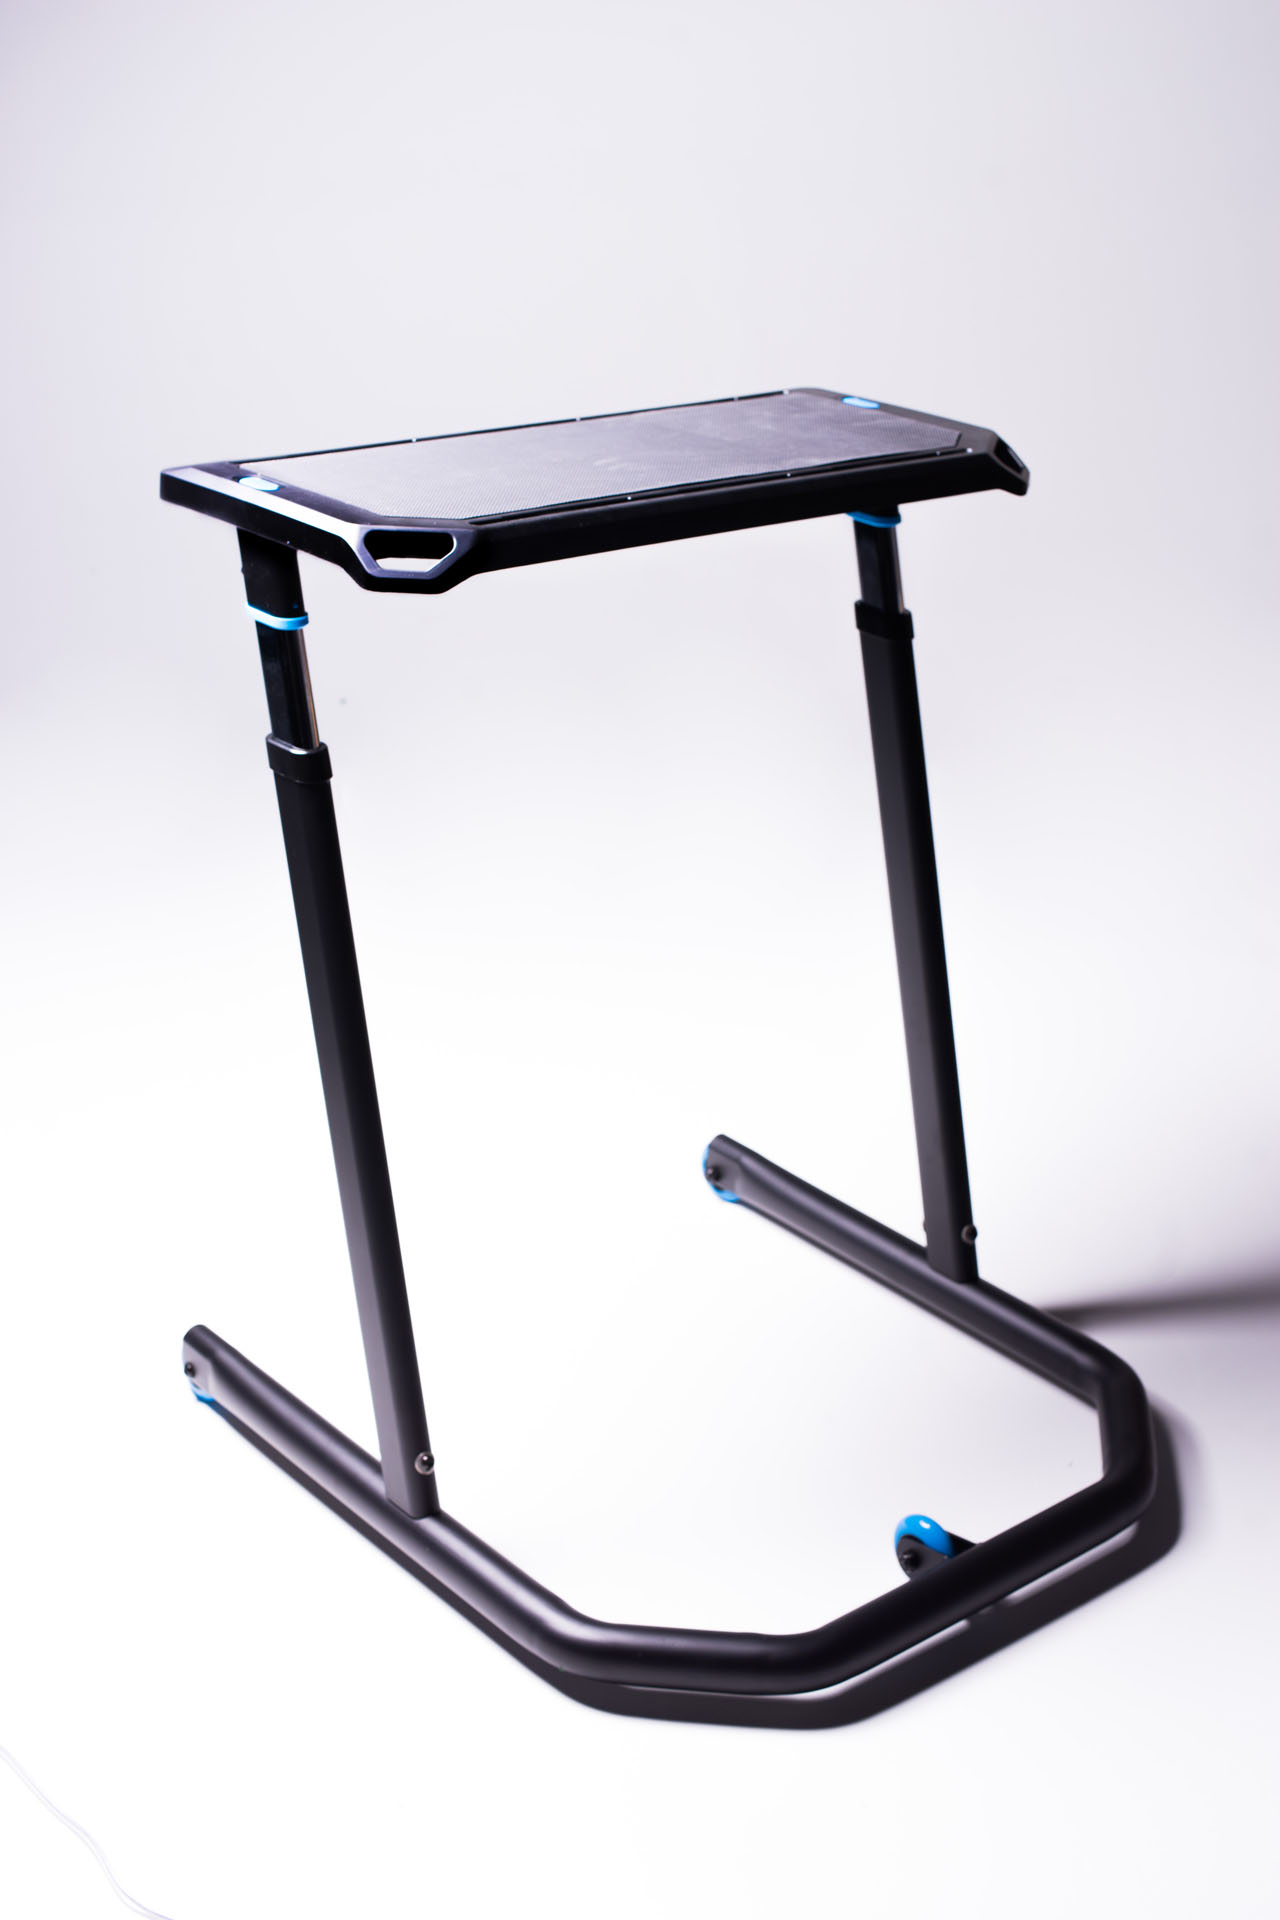 KICKR Indoor Cycling Desk-Picture-19